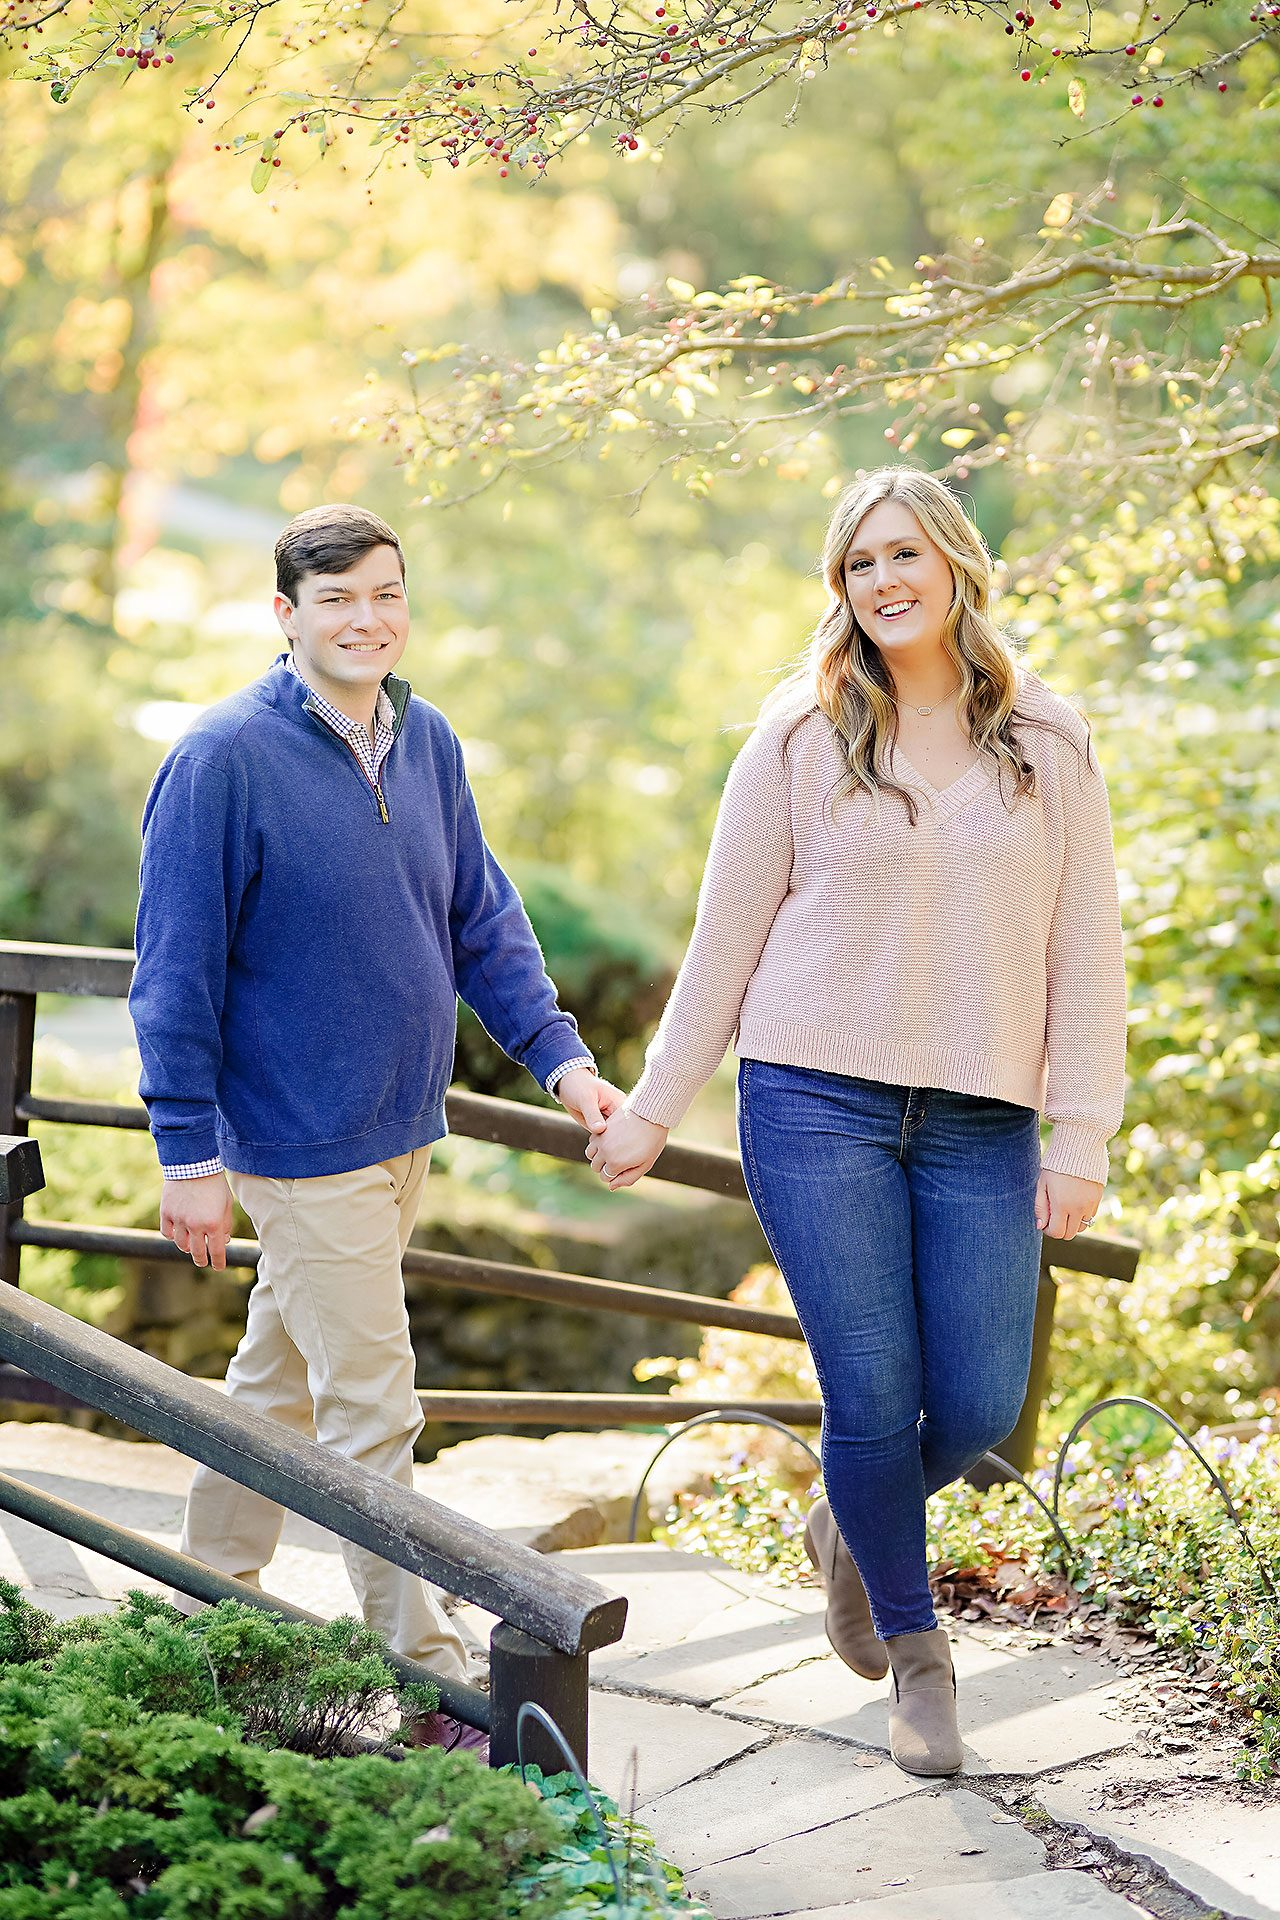 Taylor Case Newfields Engagement Session 070